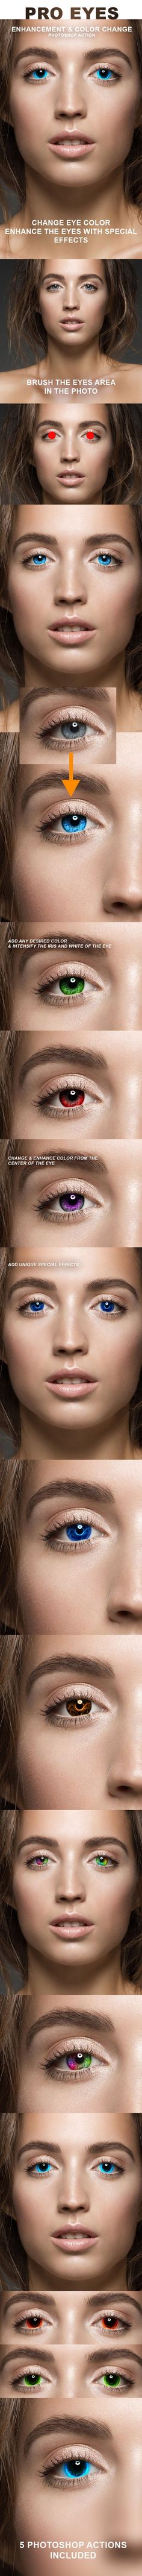 Pro Eyes Enhancement & Color Change - Photoshop Action. Download here: http://graphicriver.net/item/pro-eyes-enhancement-color-change-ps-action/16281841?ref=ksioks